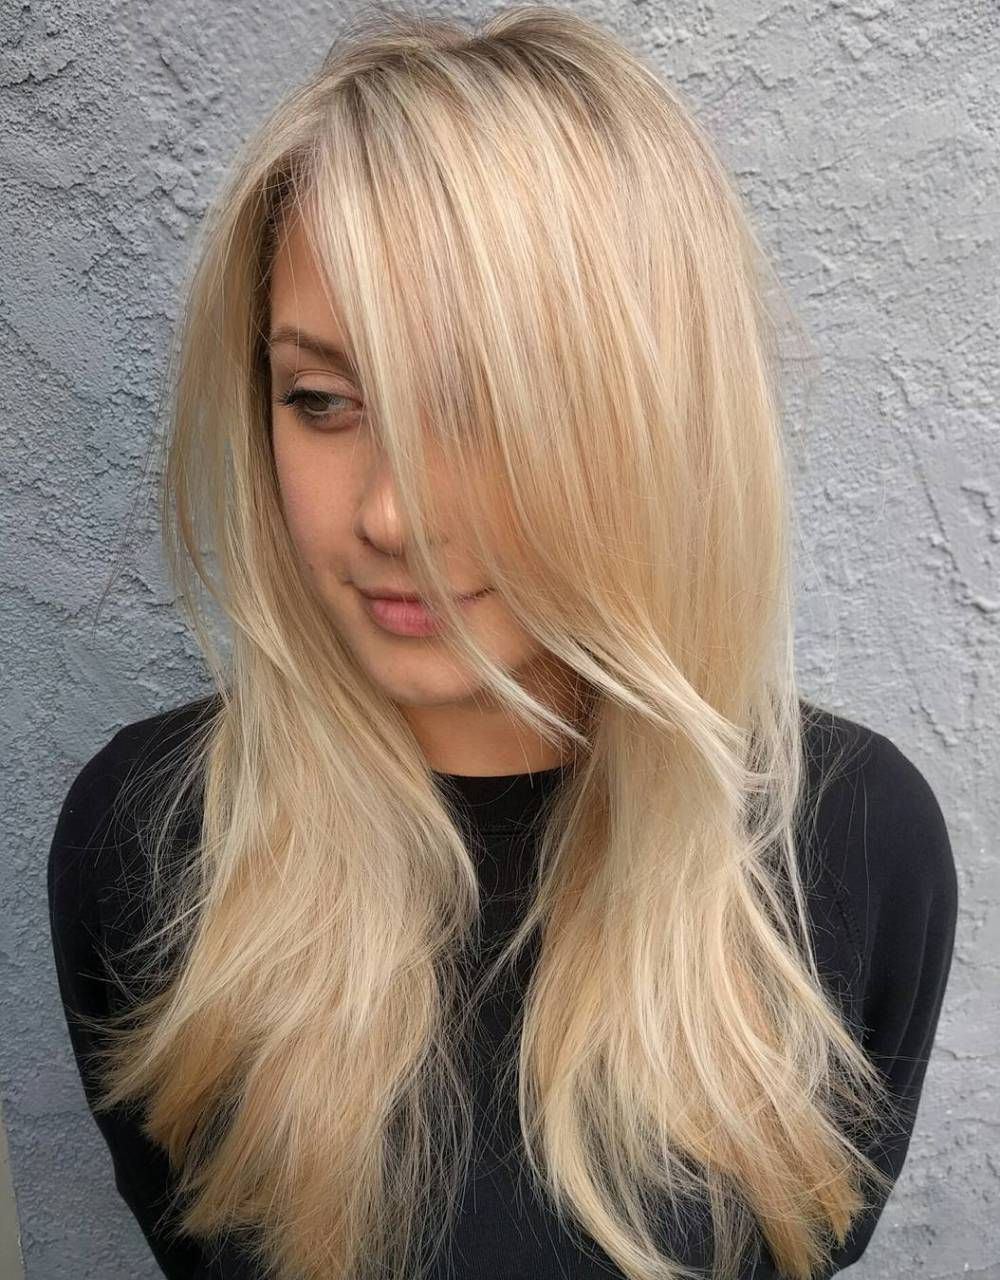 40 Long Hairstyles And Haircuts For Fine Hair Long Thin Hair Long Fine Hair Haircuts For Fine Hair